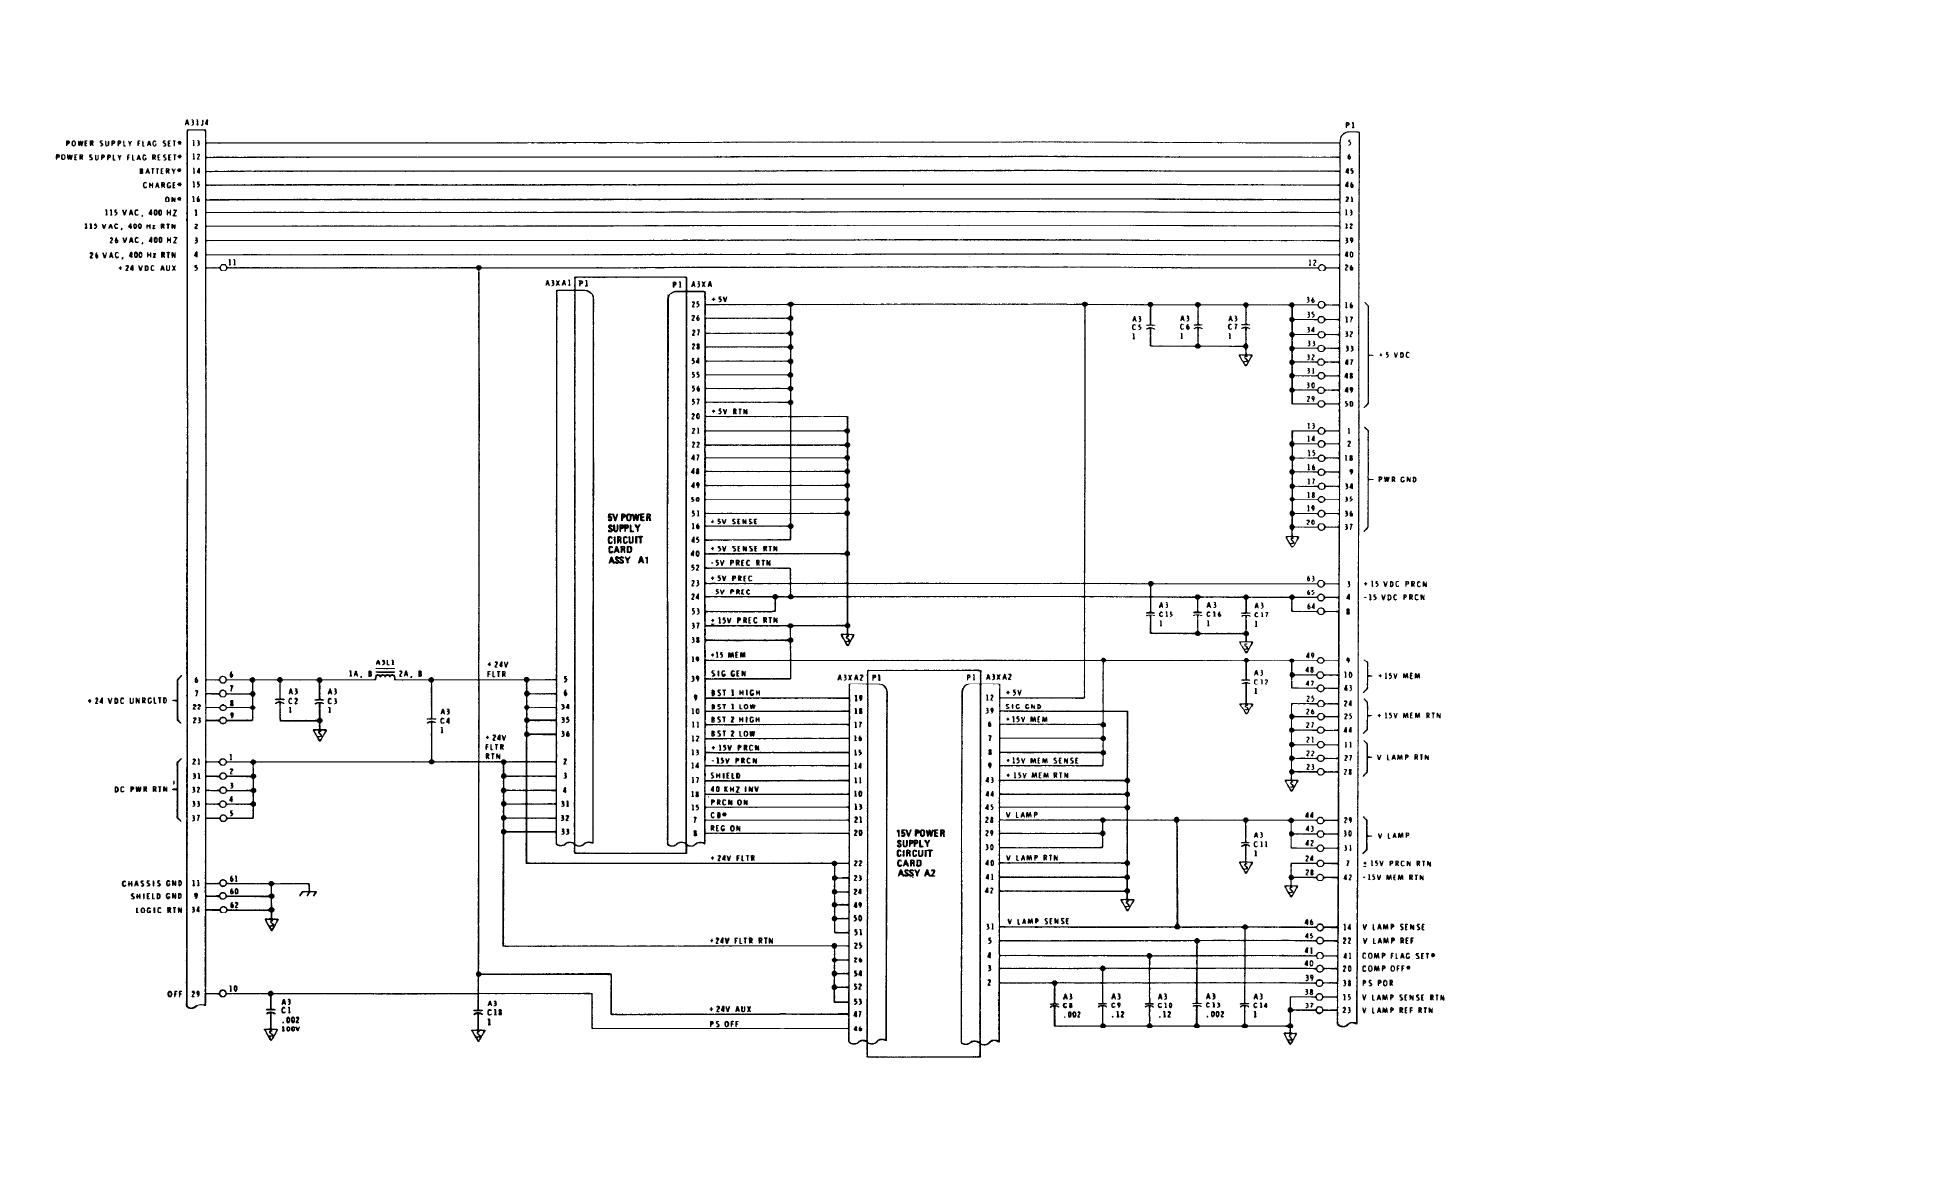 Figure FO-5. Computer Power Supply Schematic Diagram - TM-5-6675-308 ...